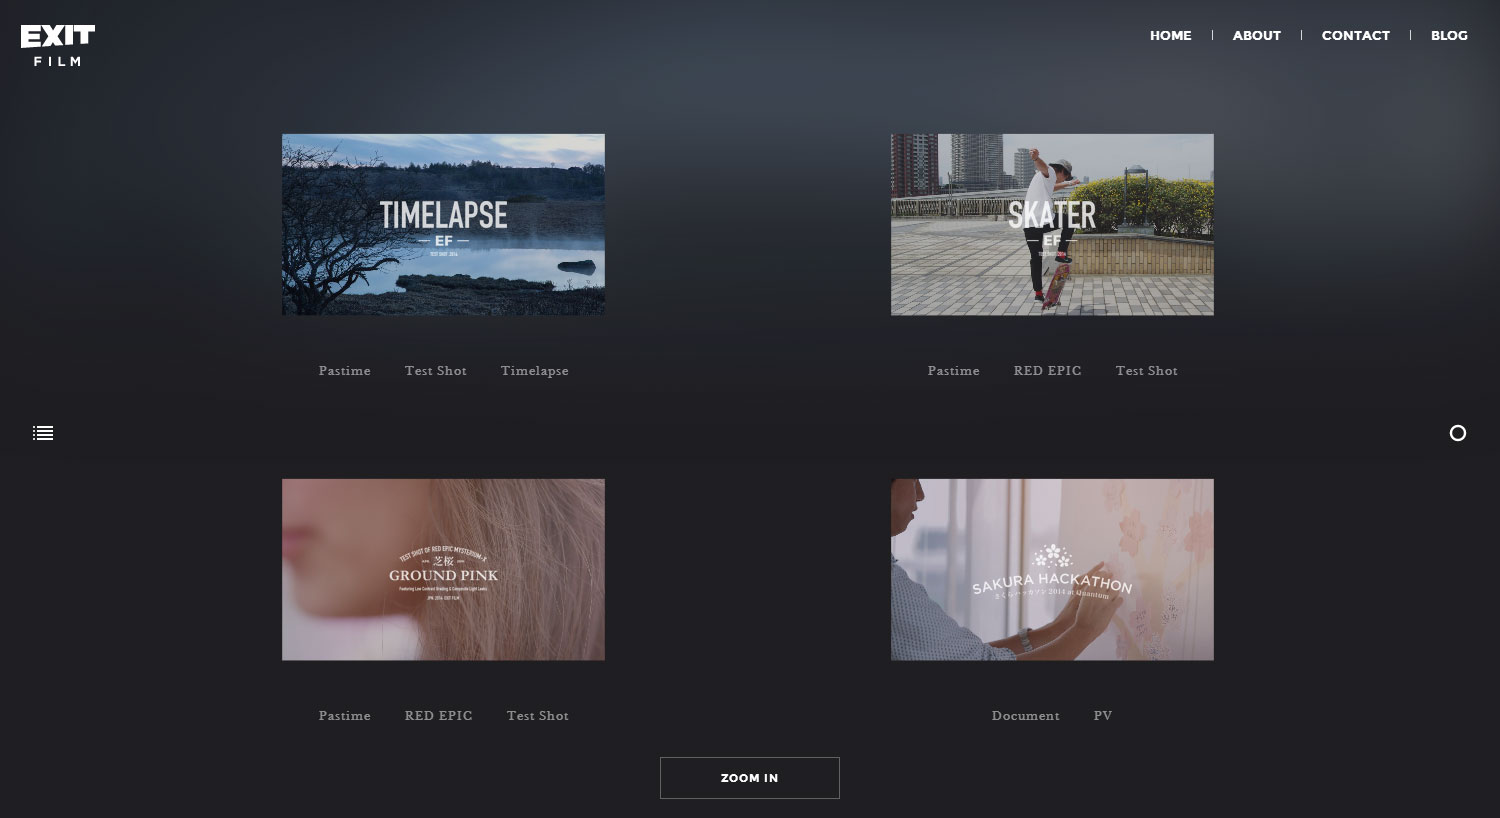 EXIT FILM - Website of the Day